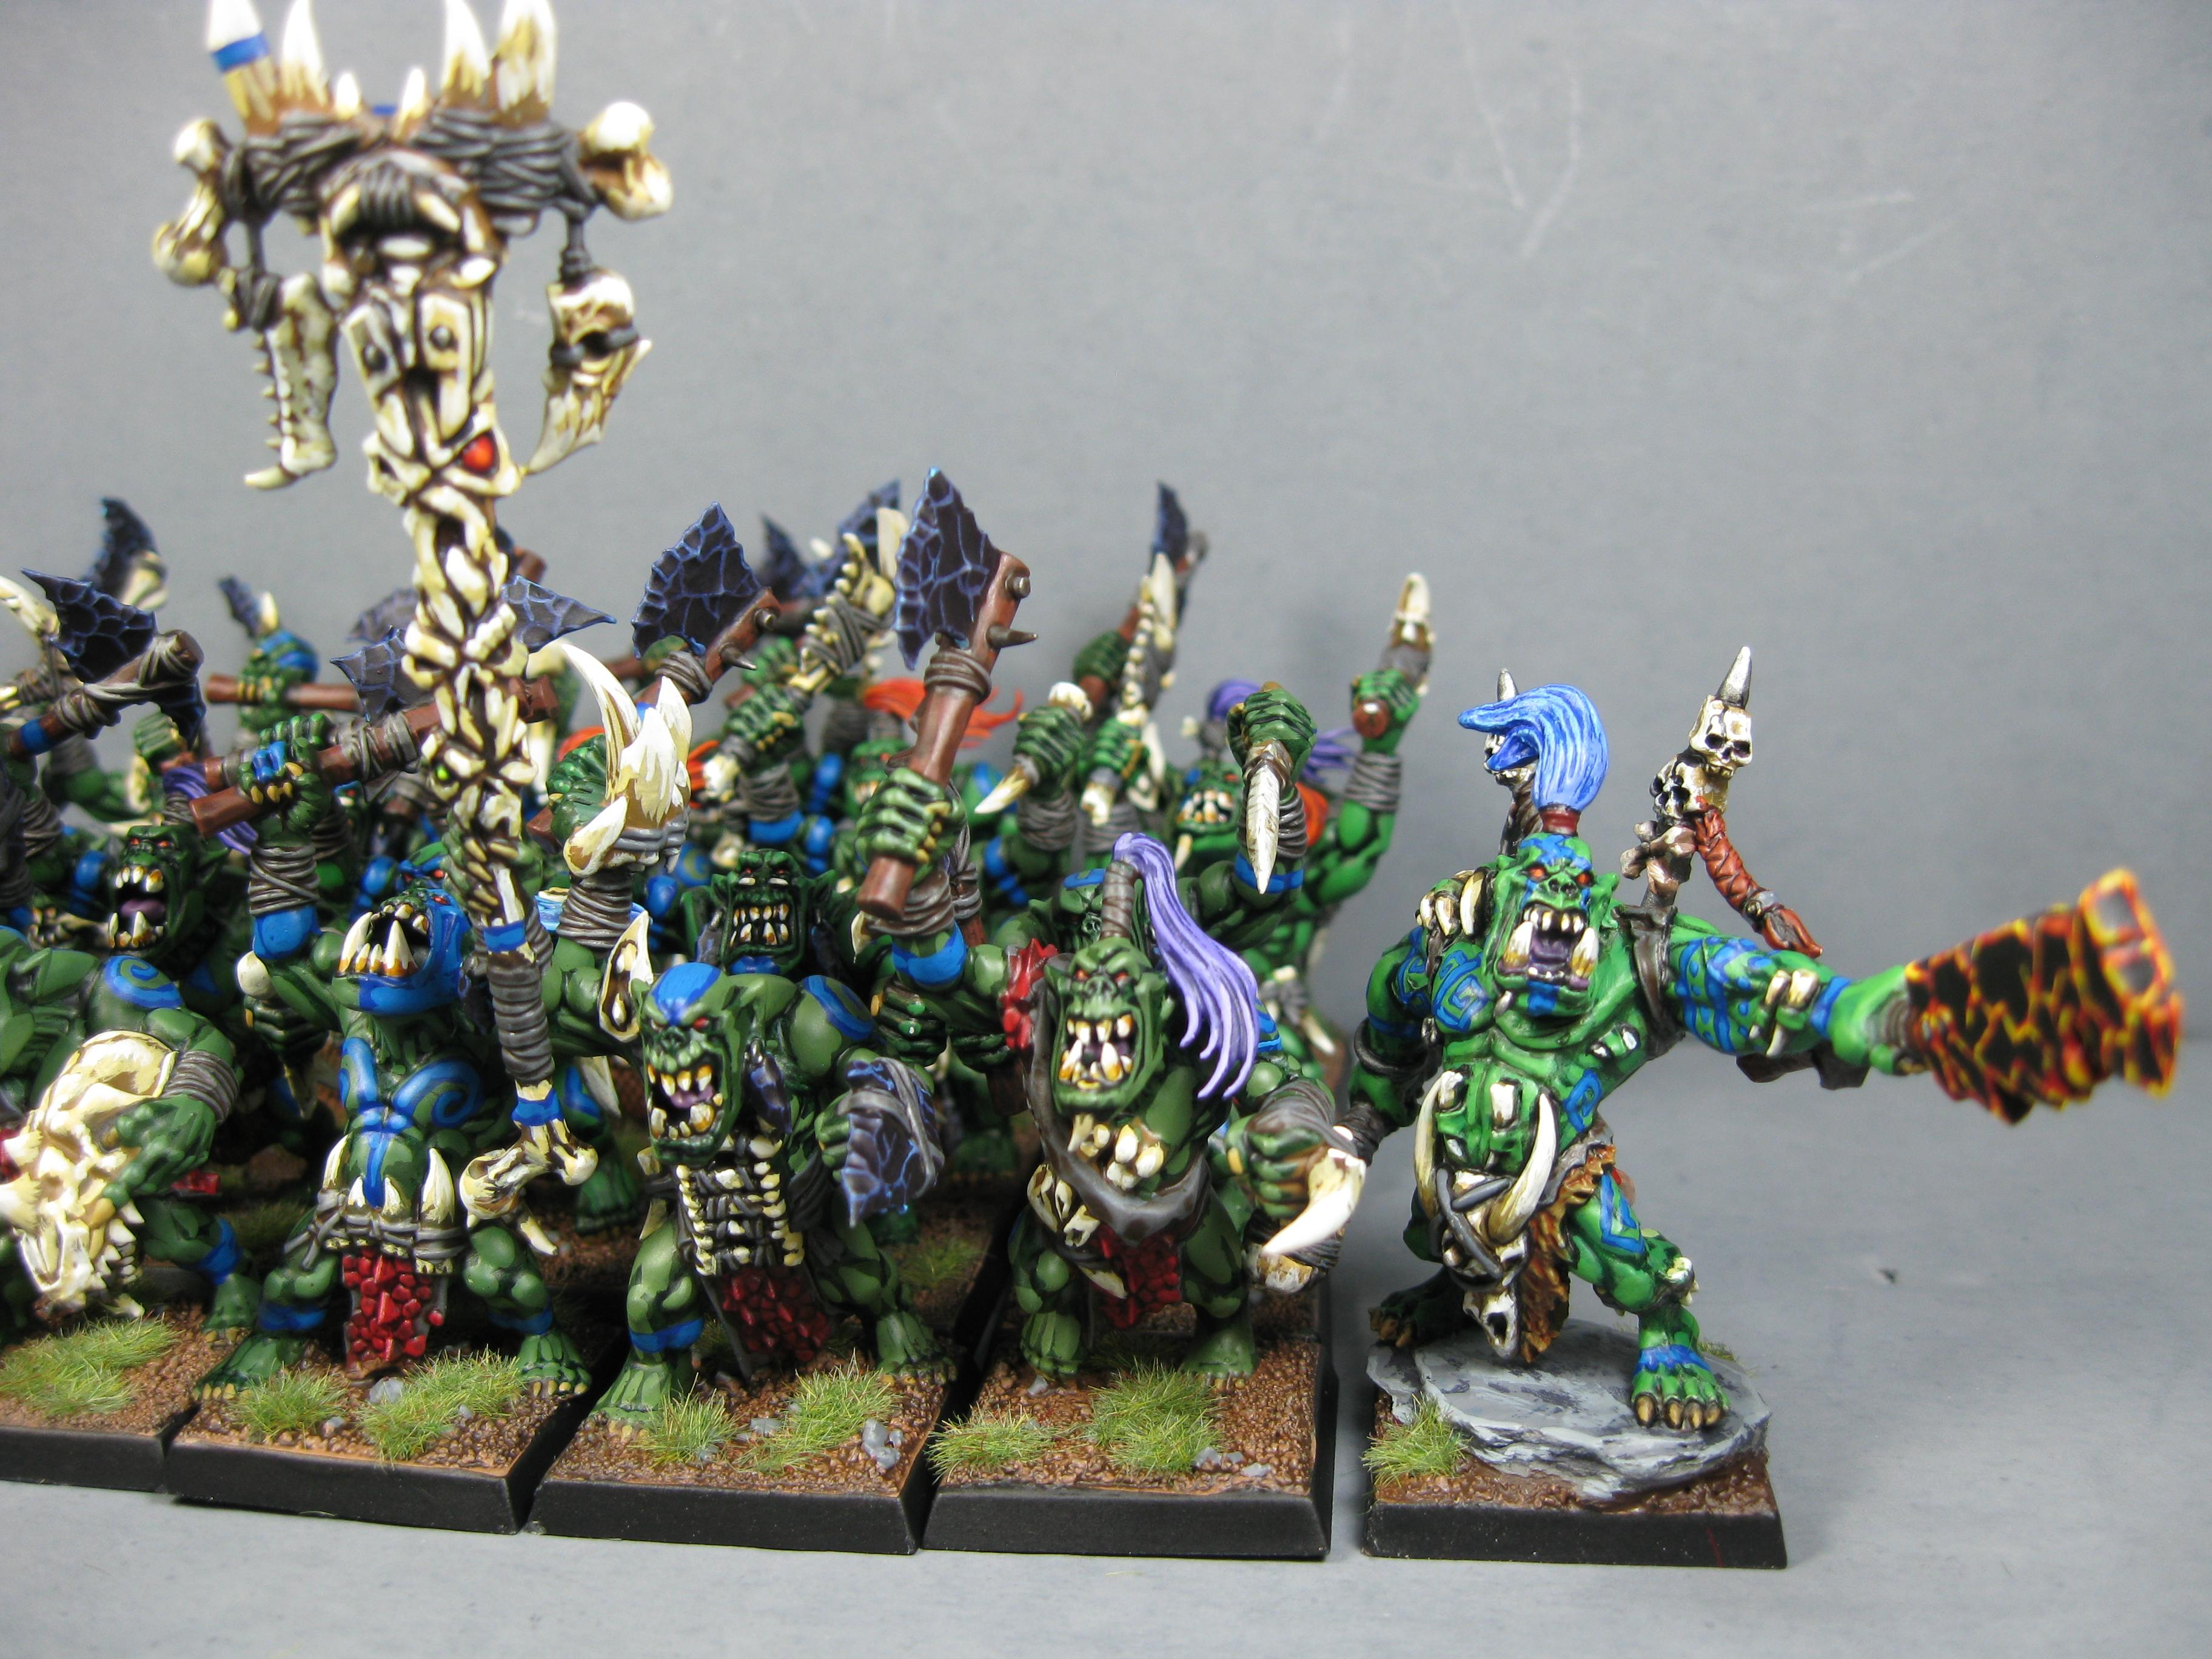 Goblins, Gobos, Orcs, Orcs And Goblins, Orks, Pro Painted, Rpg, Warhammer Fantasy